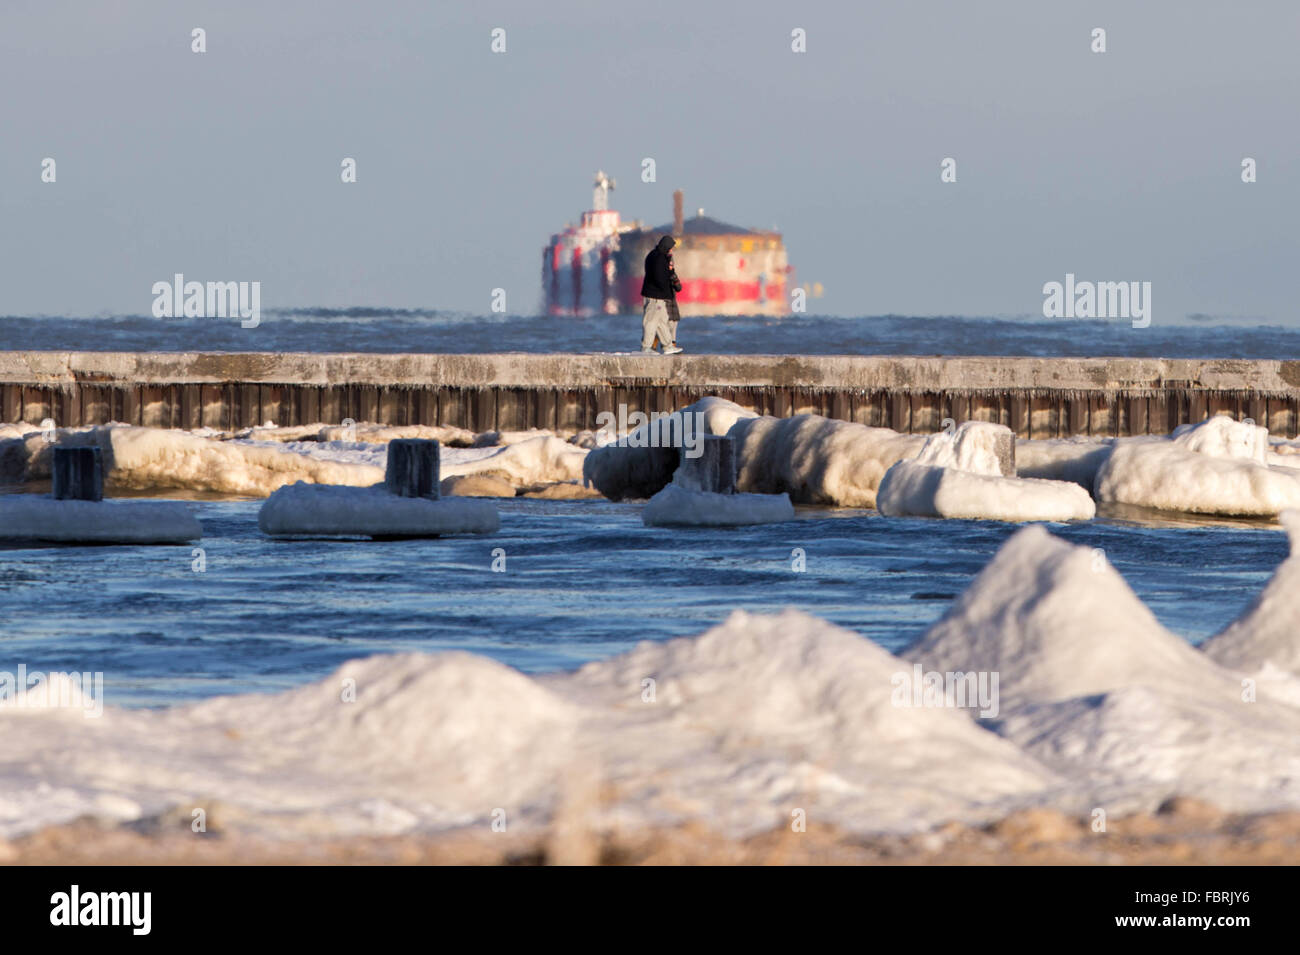 Chicago, USA. 19th Jan, 2016. People walk on the frozen bank of Lake Michigan as chilly weather continues in Chicago, - Stock Image